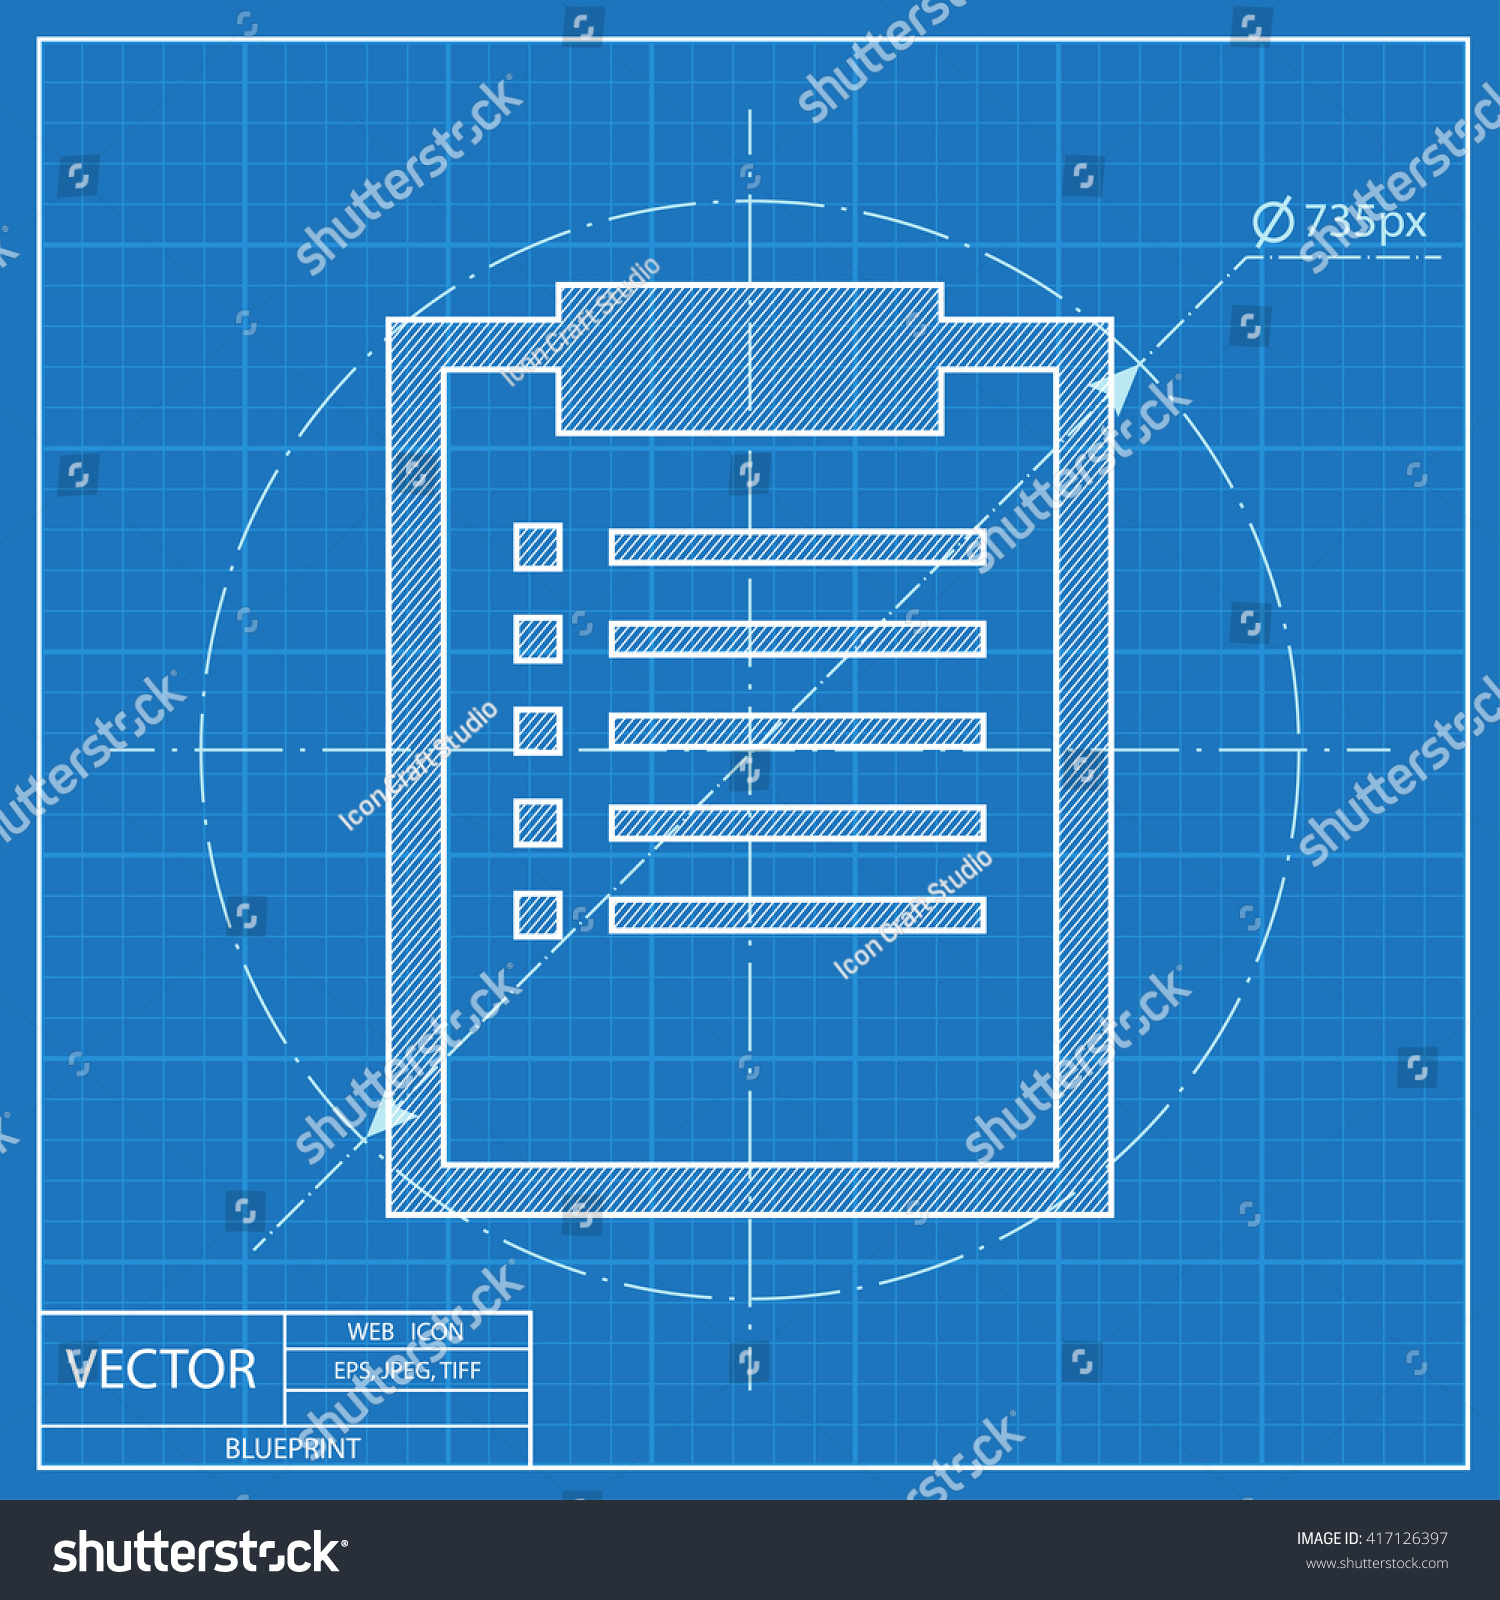 Blueprint icon clipboard document stock vector 417126397 shutterstock blueprint icon of clipboard with document malvernweather Gallery